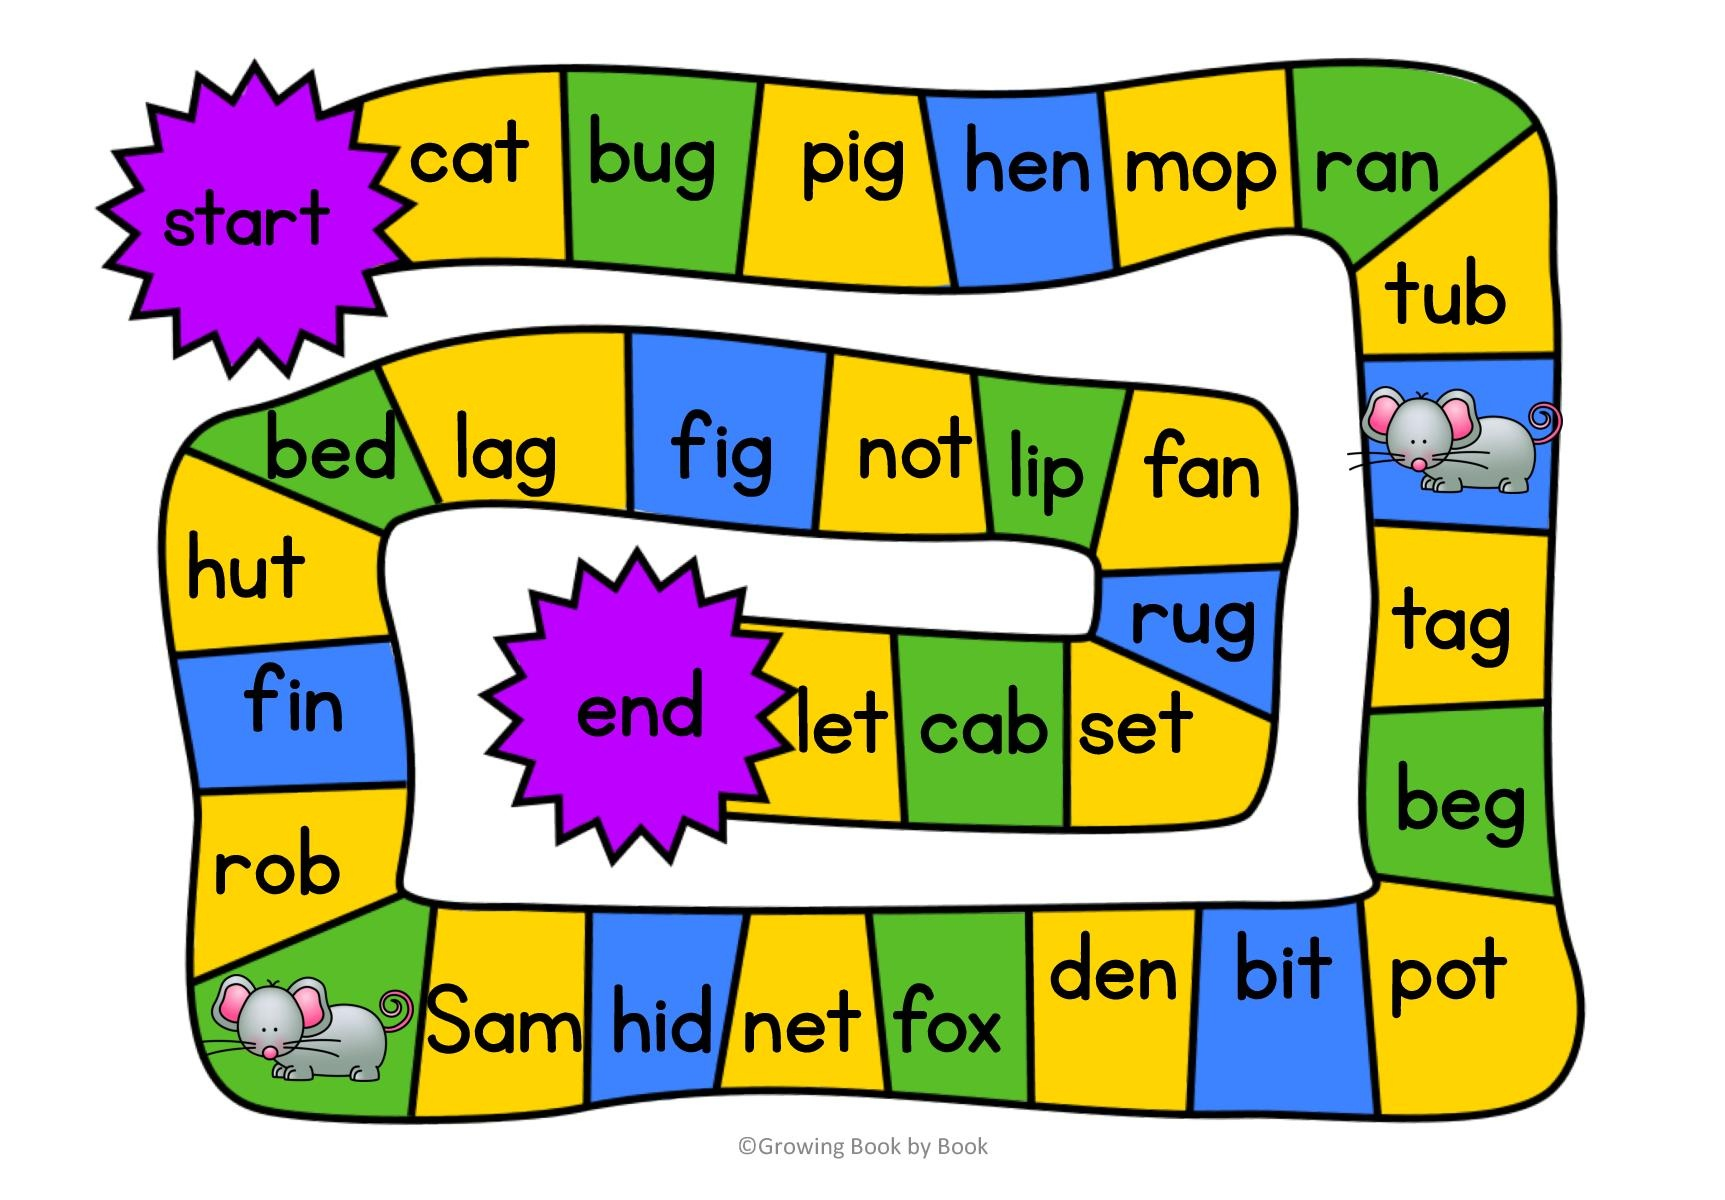 3 Free Printable Cvc Word Games - Free Printable Word Games